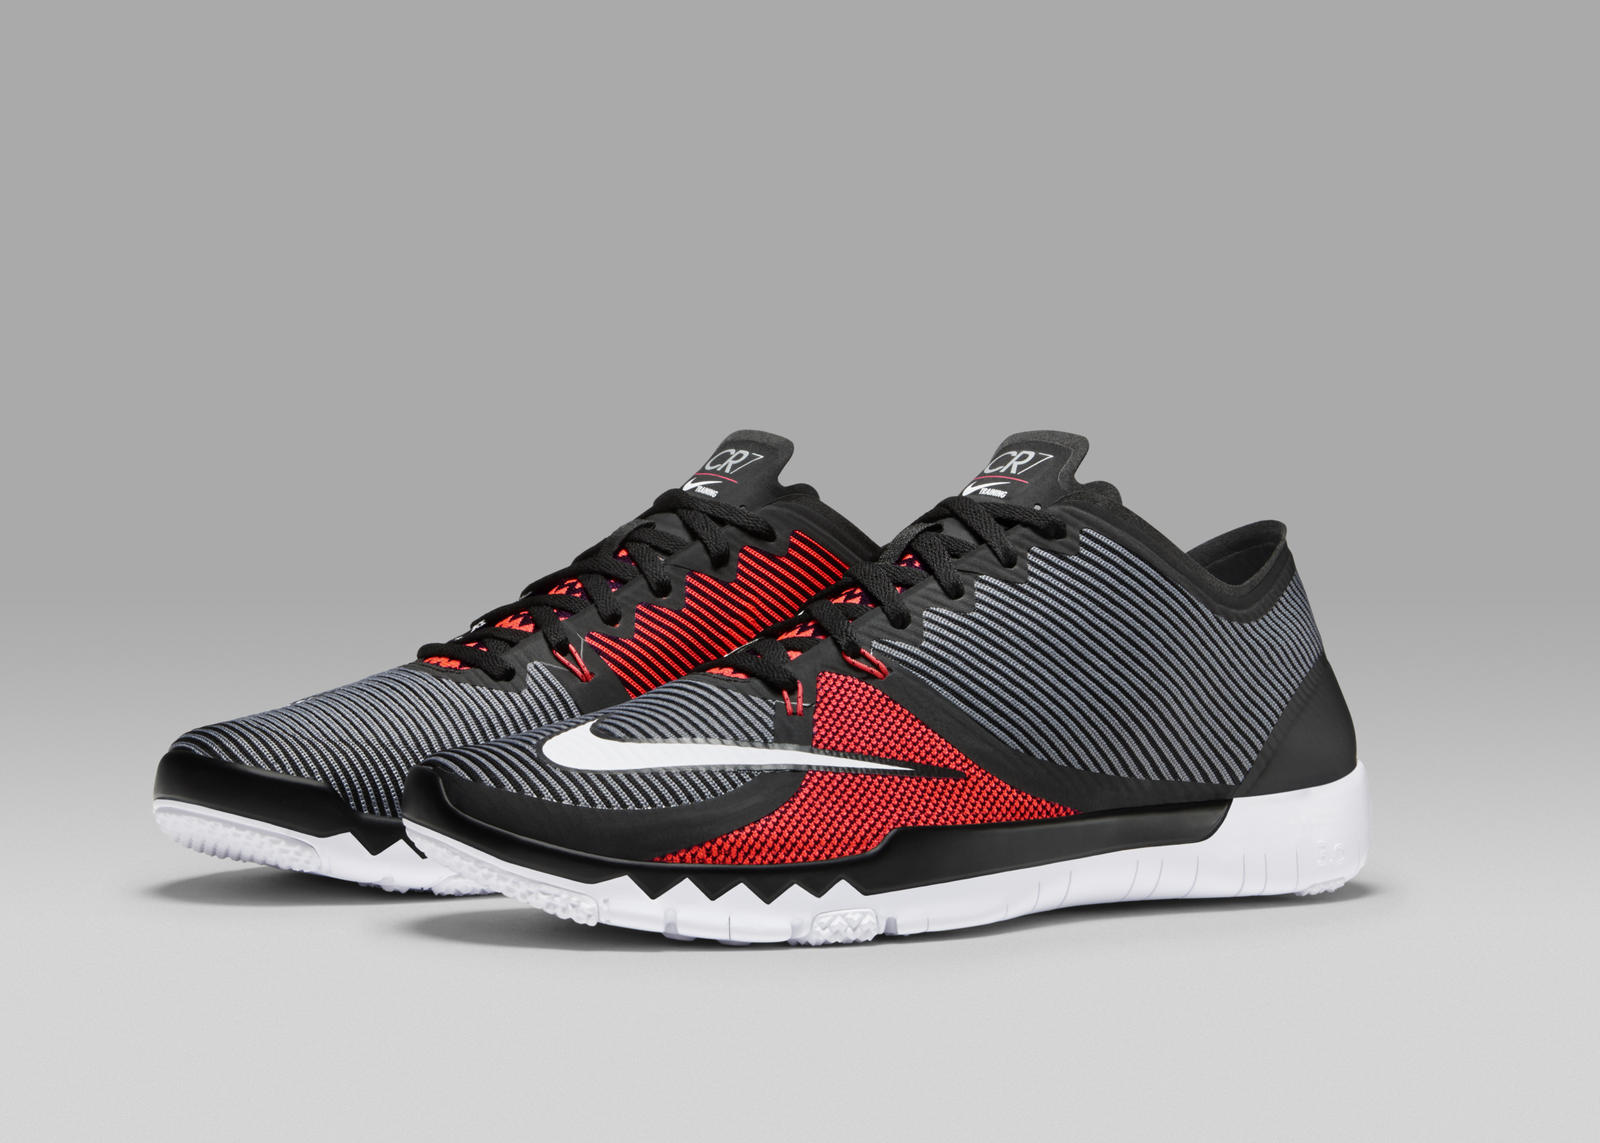 Tenis Nike Run Libre 3 Conditions